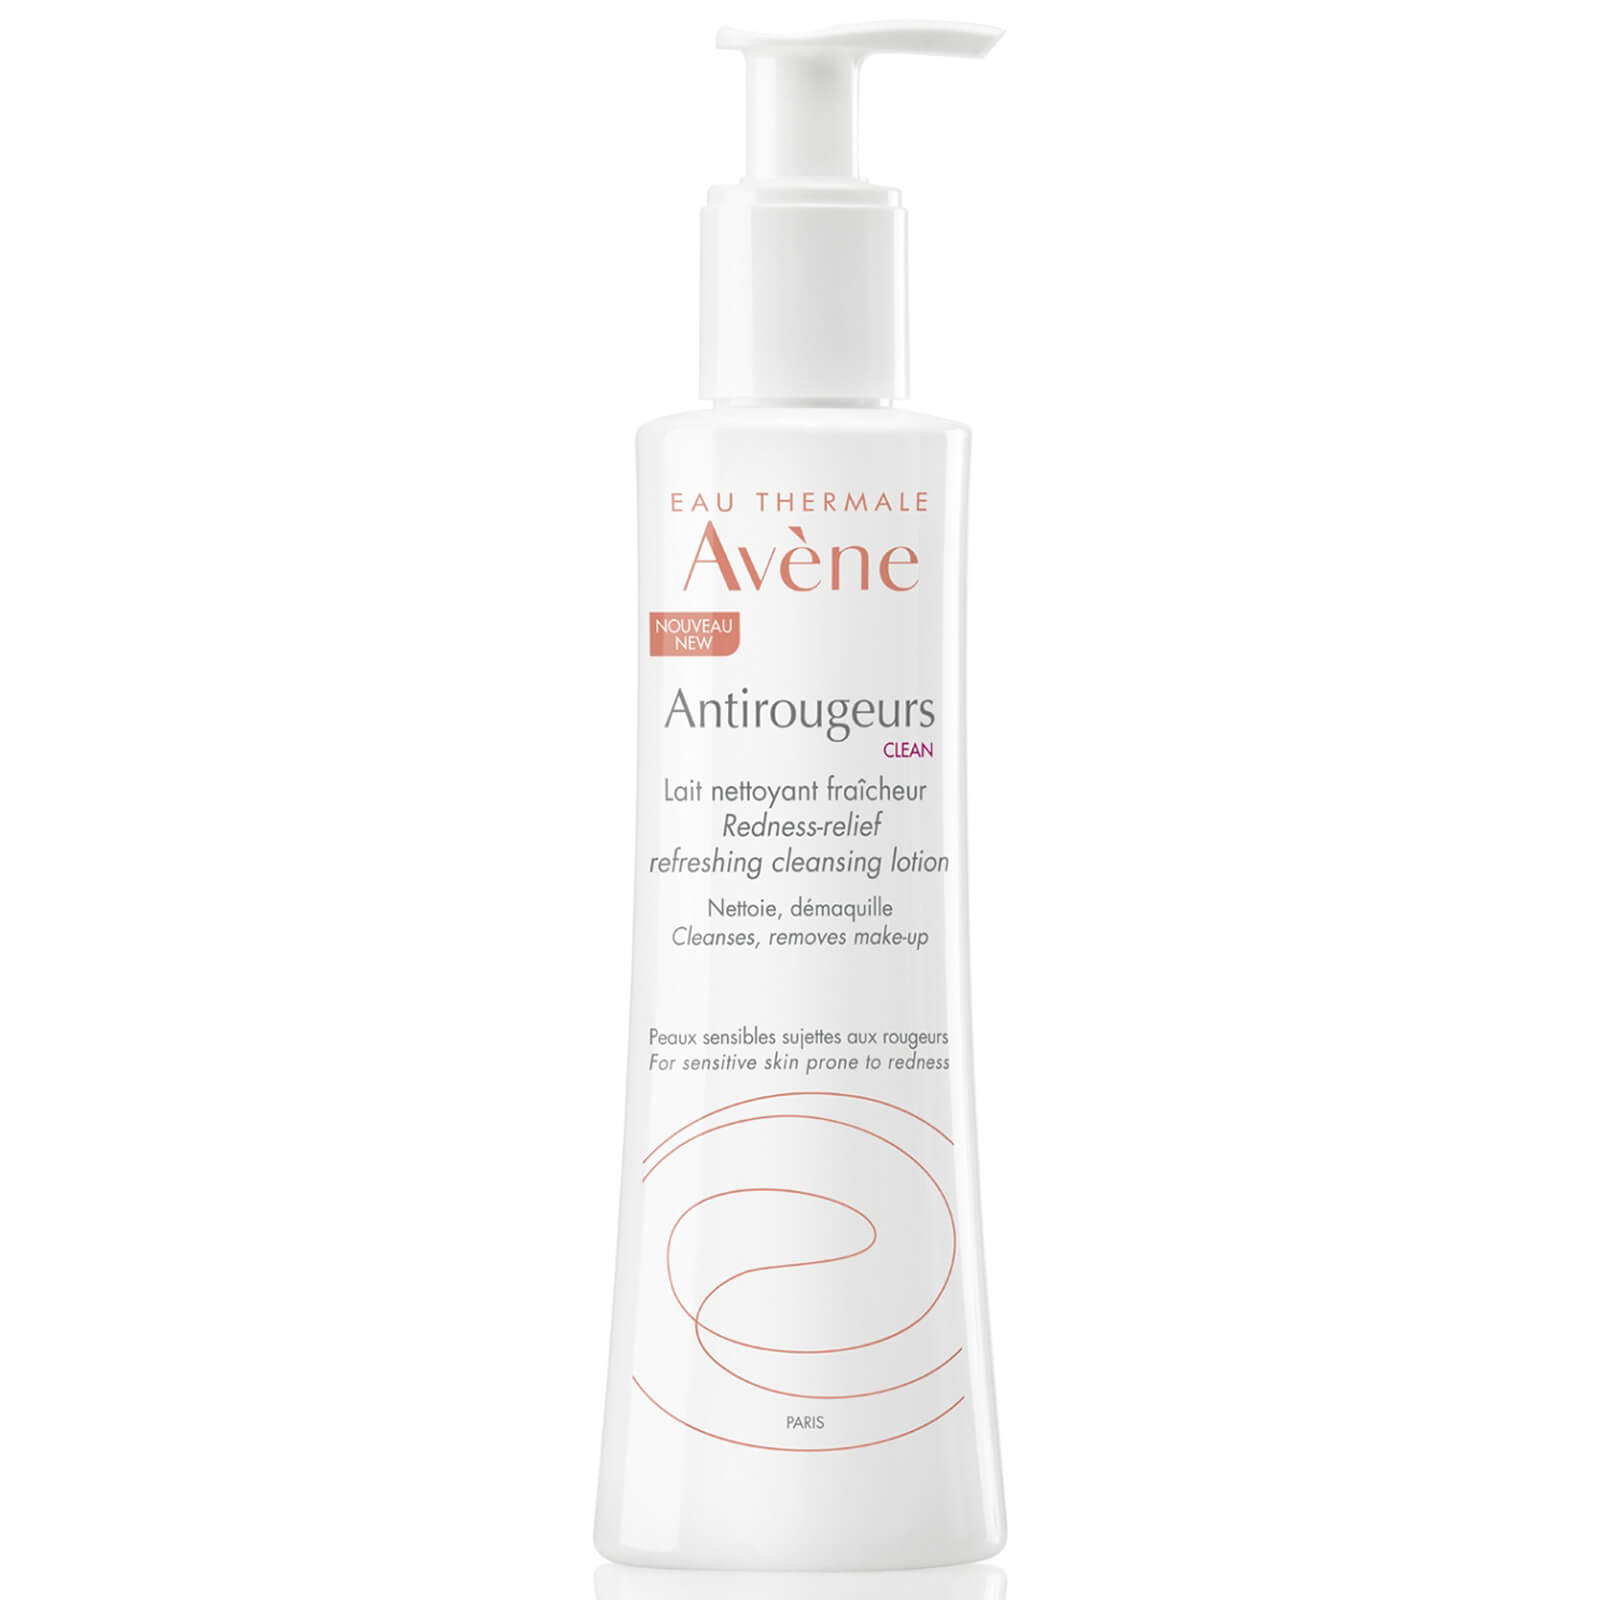 Avène Antirougeurs CLEAN Cleansing Lotion